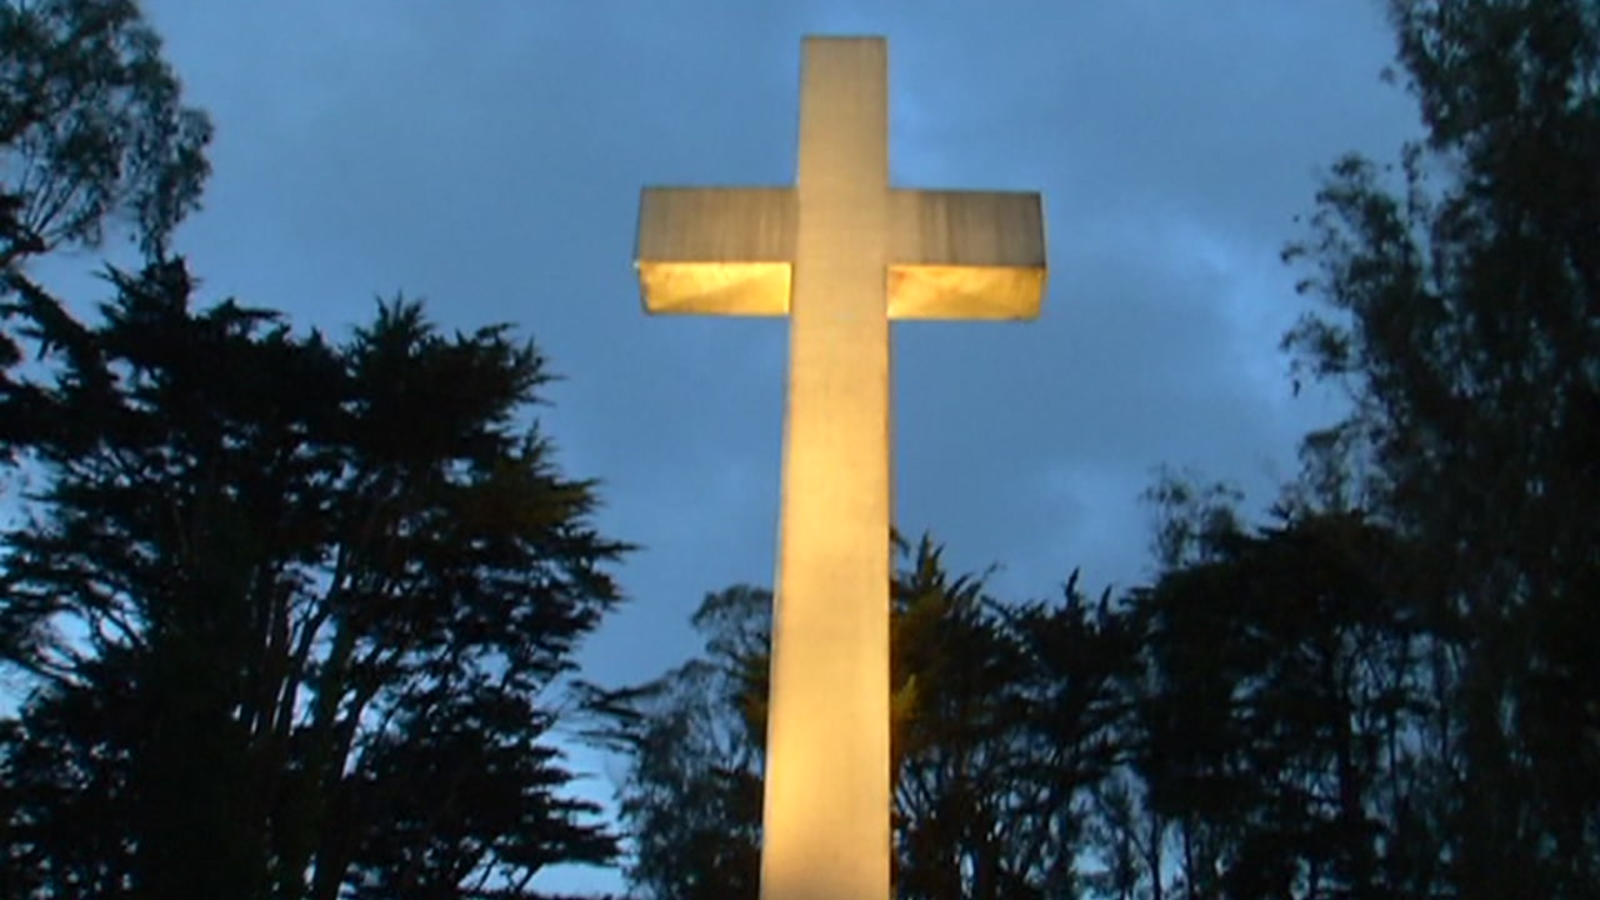 Hundreds to celebrate Easter at site of cross atop SF's Mount Davidson